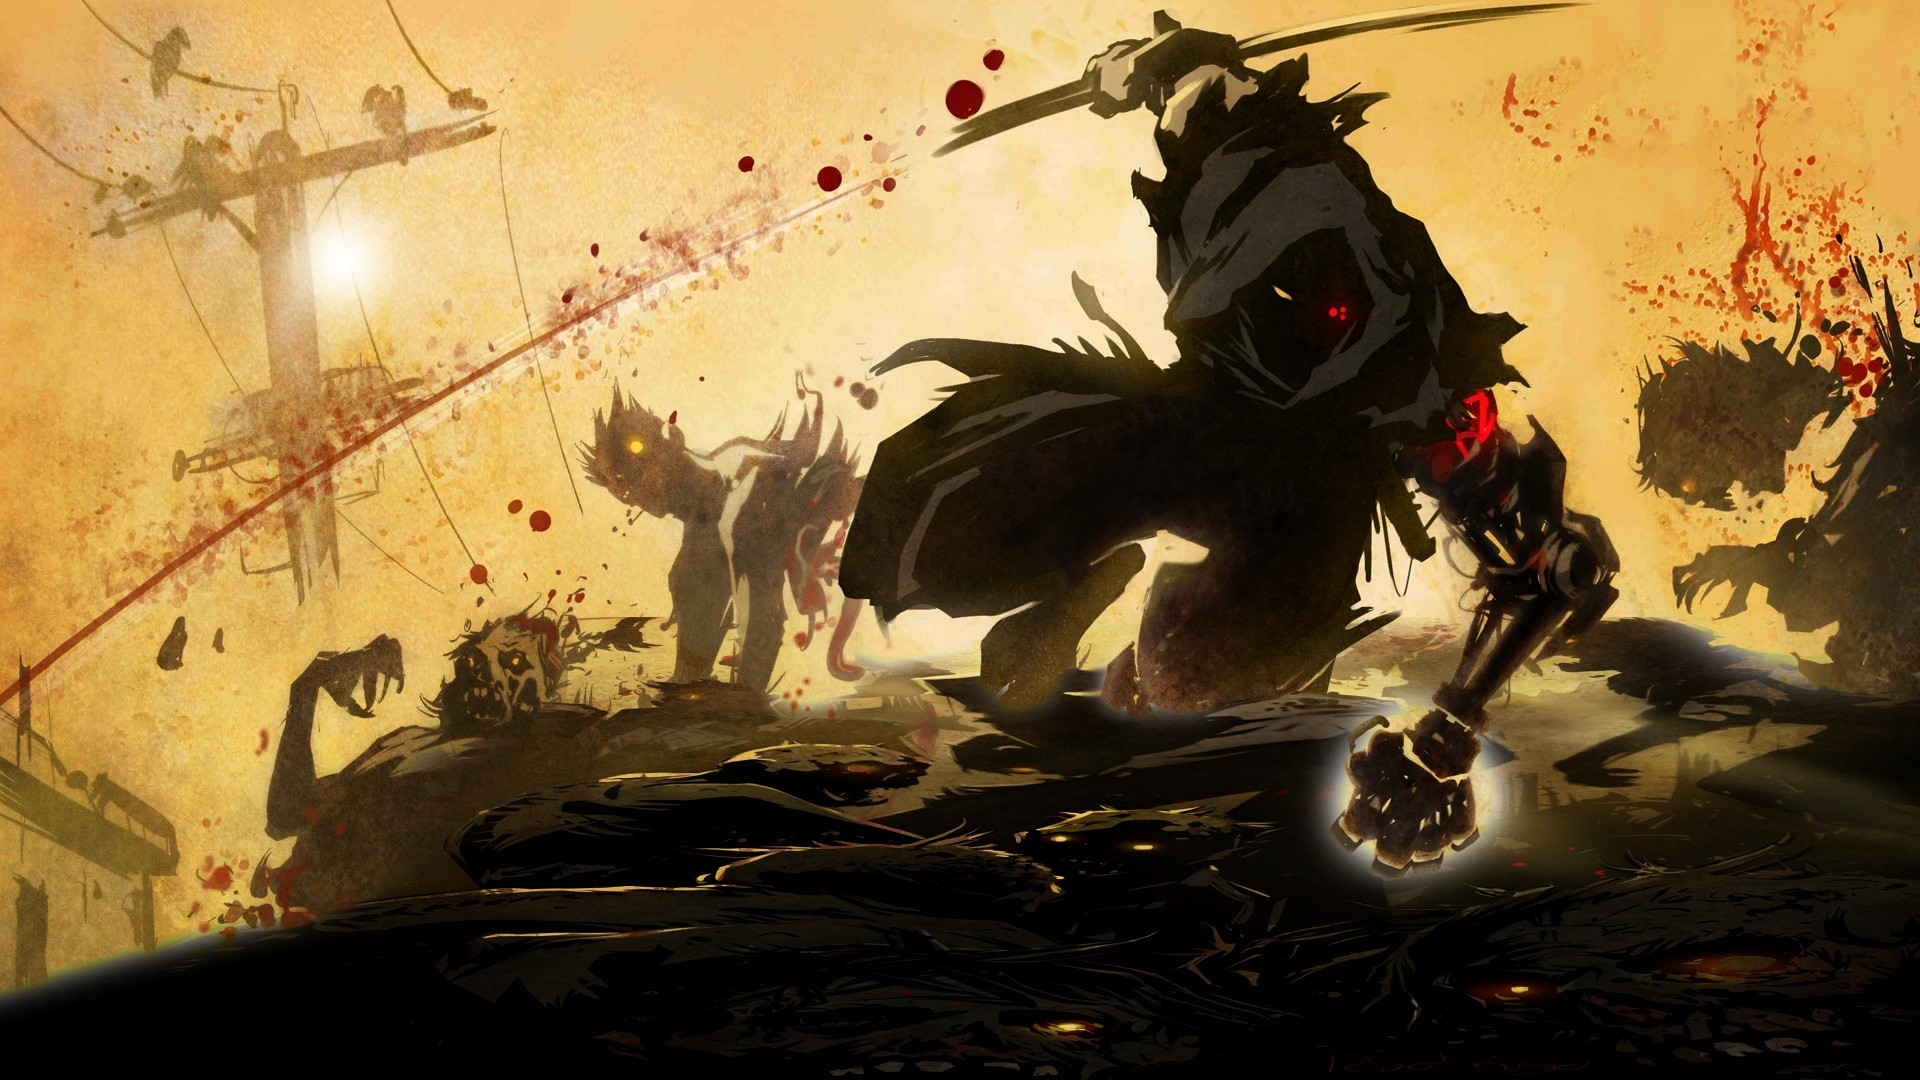 1920x1080 Ninja Gaiden Z videogames anime warrior dark zombies blood wallpaper |   | 44238 | WallpaperUP